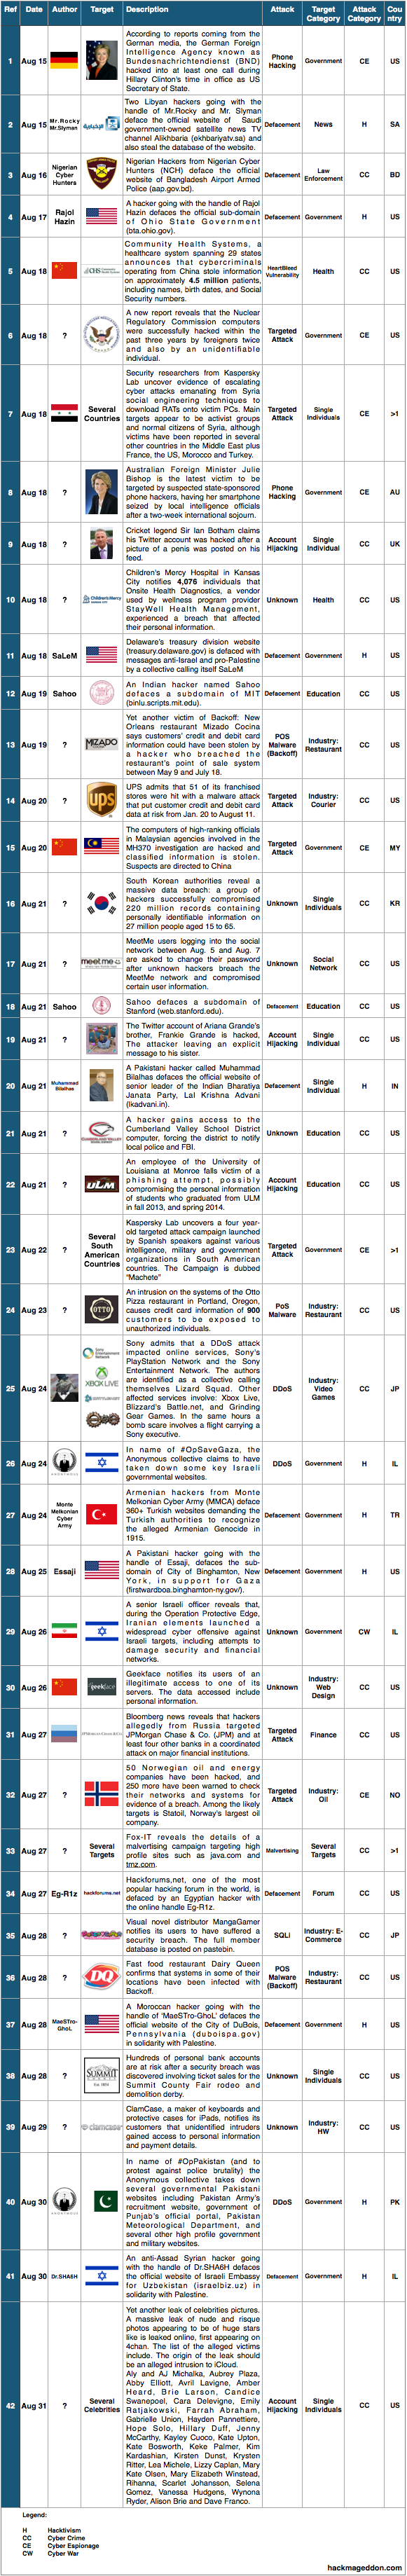 16-31 August 2014 Cyber Attacks Timeline v2